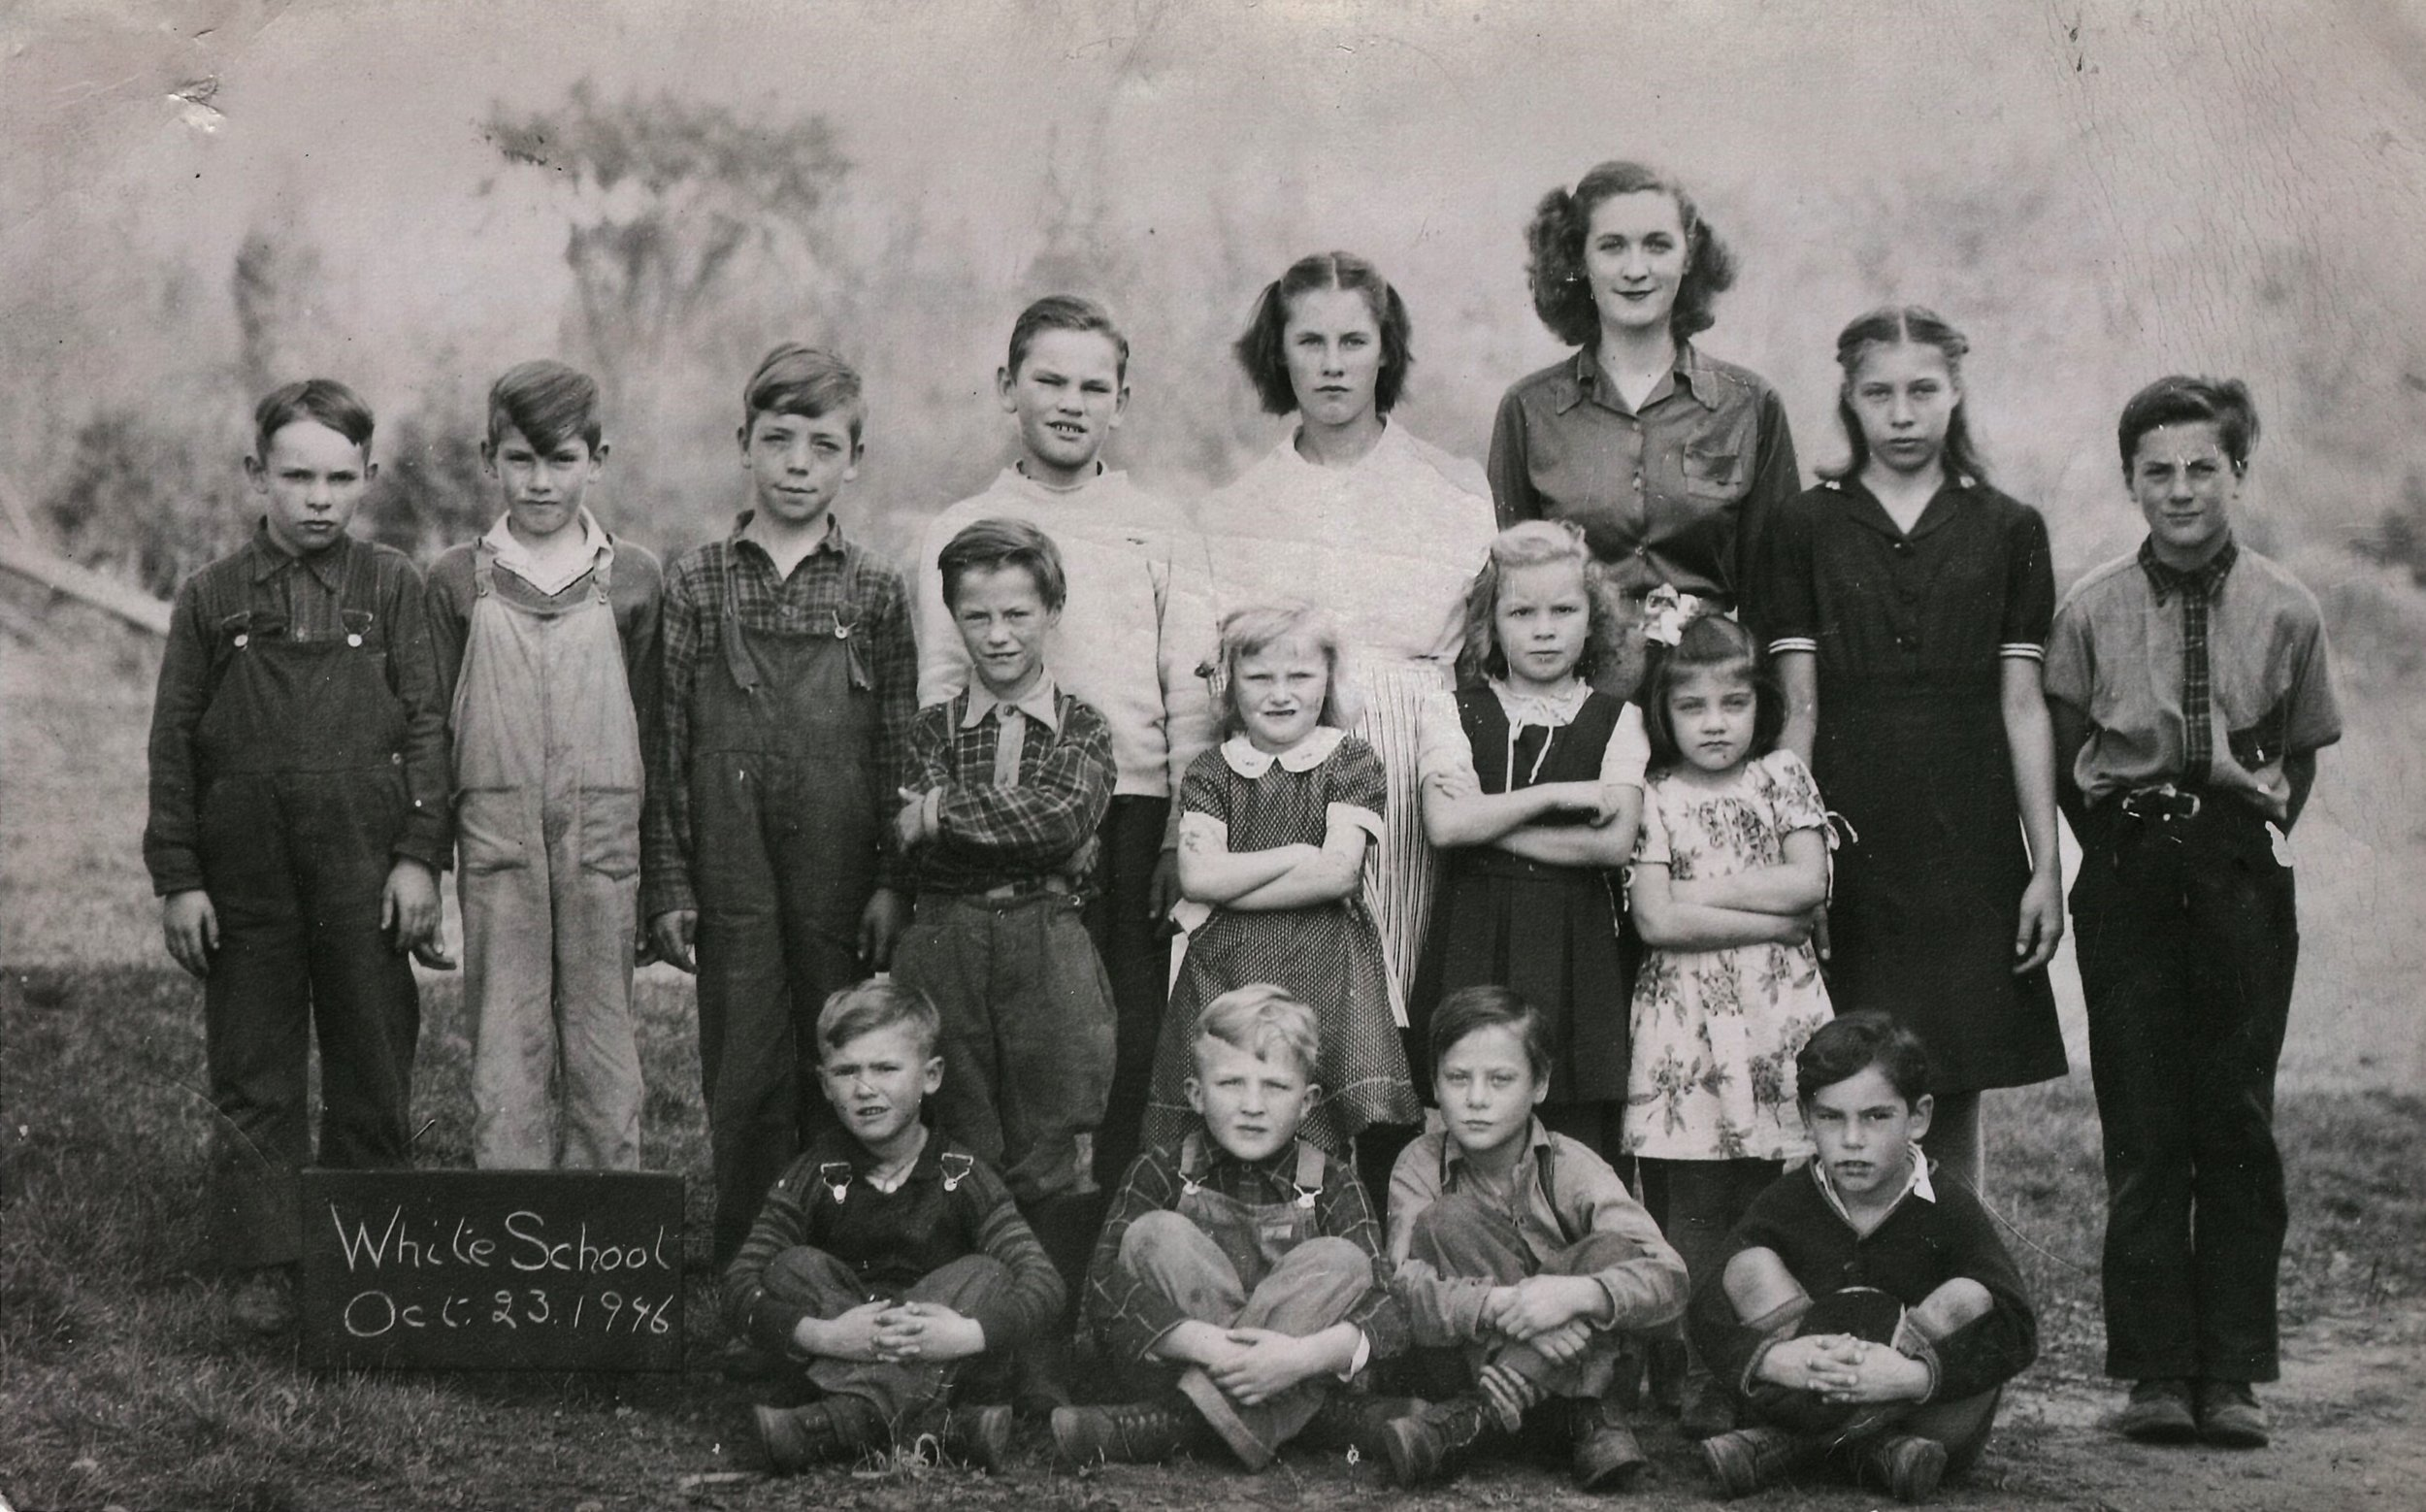 """WHITE SCHOOL 1946. BACK ROW - 4TH BOY TO THE RIGHT JOHN """"JACK"""" CLEMENS, DOROTHY HULSMANS, TEACHER, UNKNOWN GIRL, LEO HULSMANS (MY DAD) AT THE END STANDING. 2ND ROW BOY STANDING: DAVID HULSMANS, BESIDE HIM JEAN HULSMANS. FRONT ROW SITTING 3RD BOY HENRY HULSMANS. John Clemens is front row far right."""